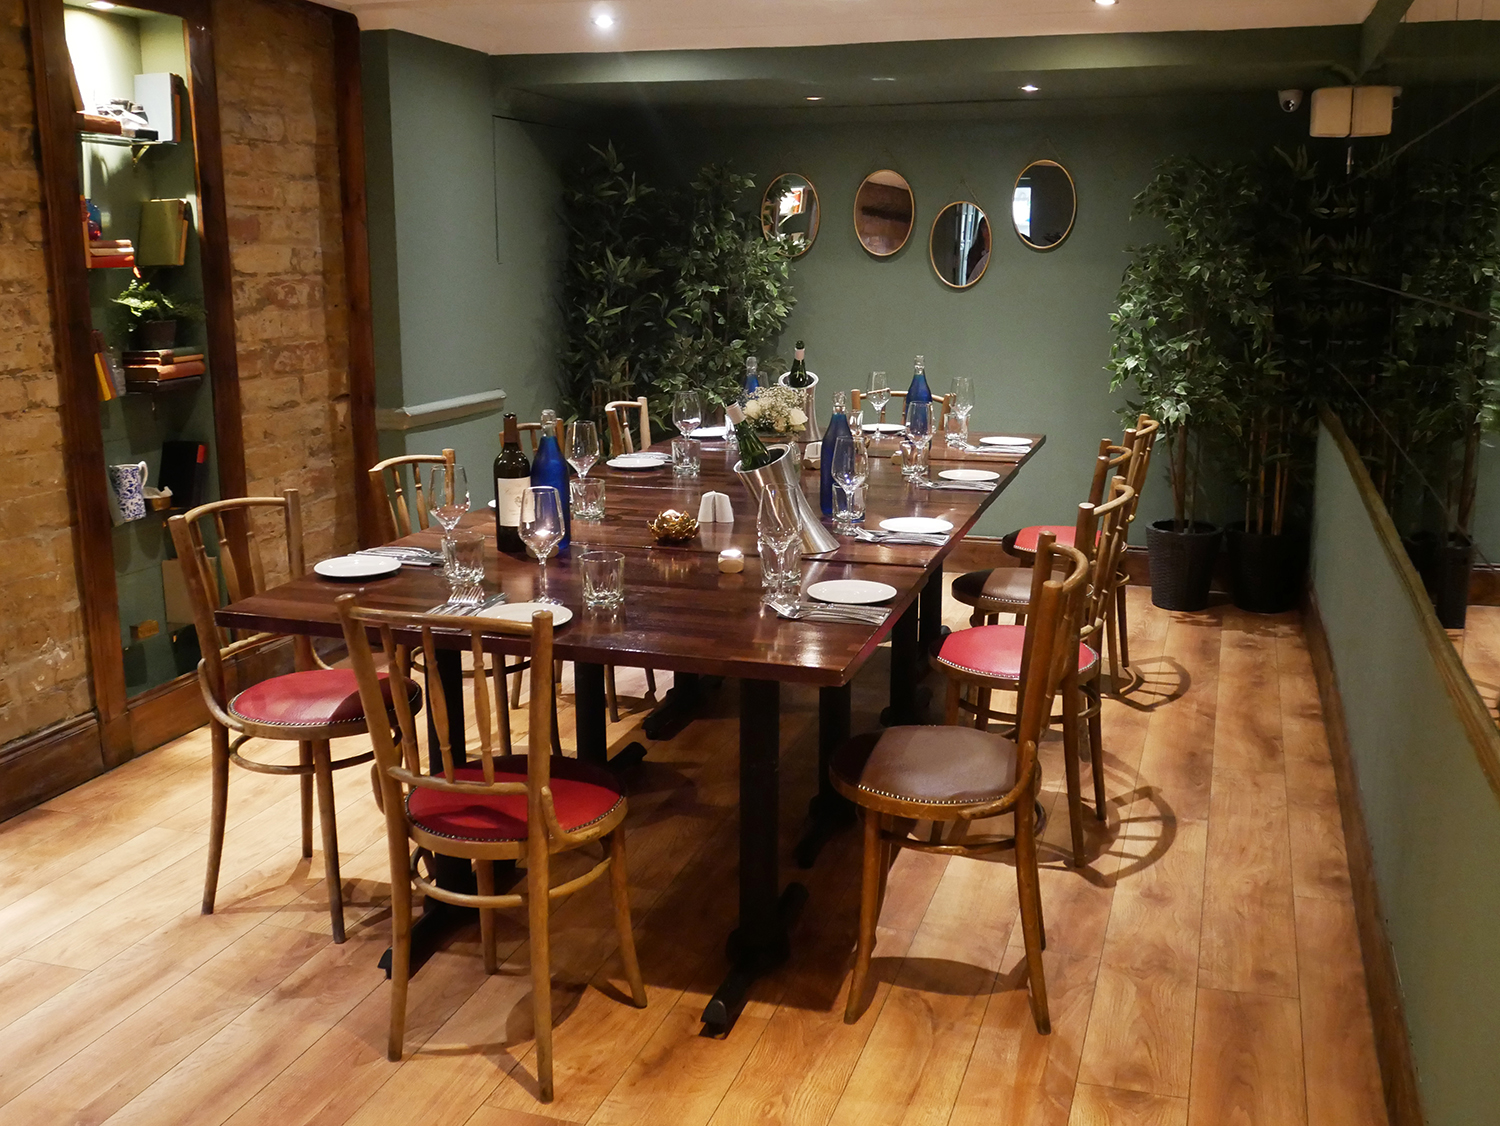 new chapter edinburgh private dining room 2.jpg